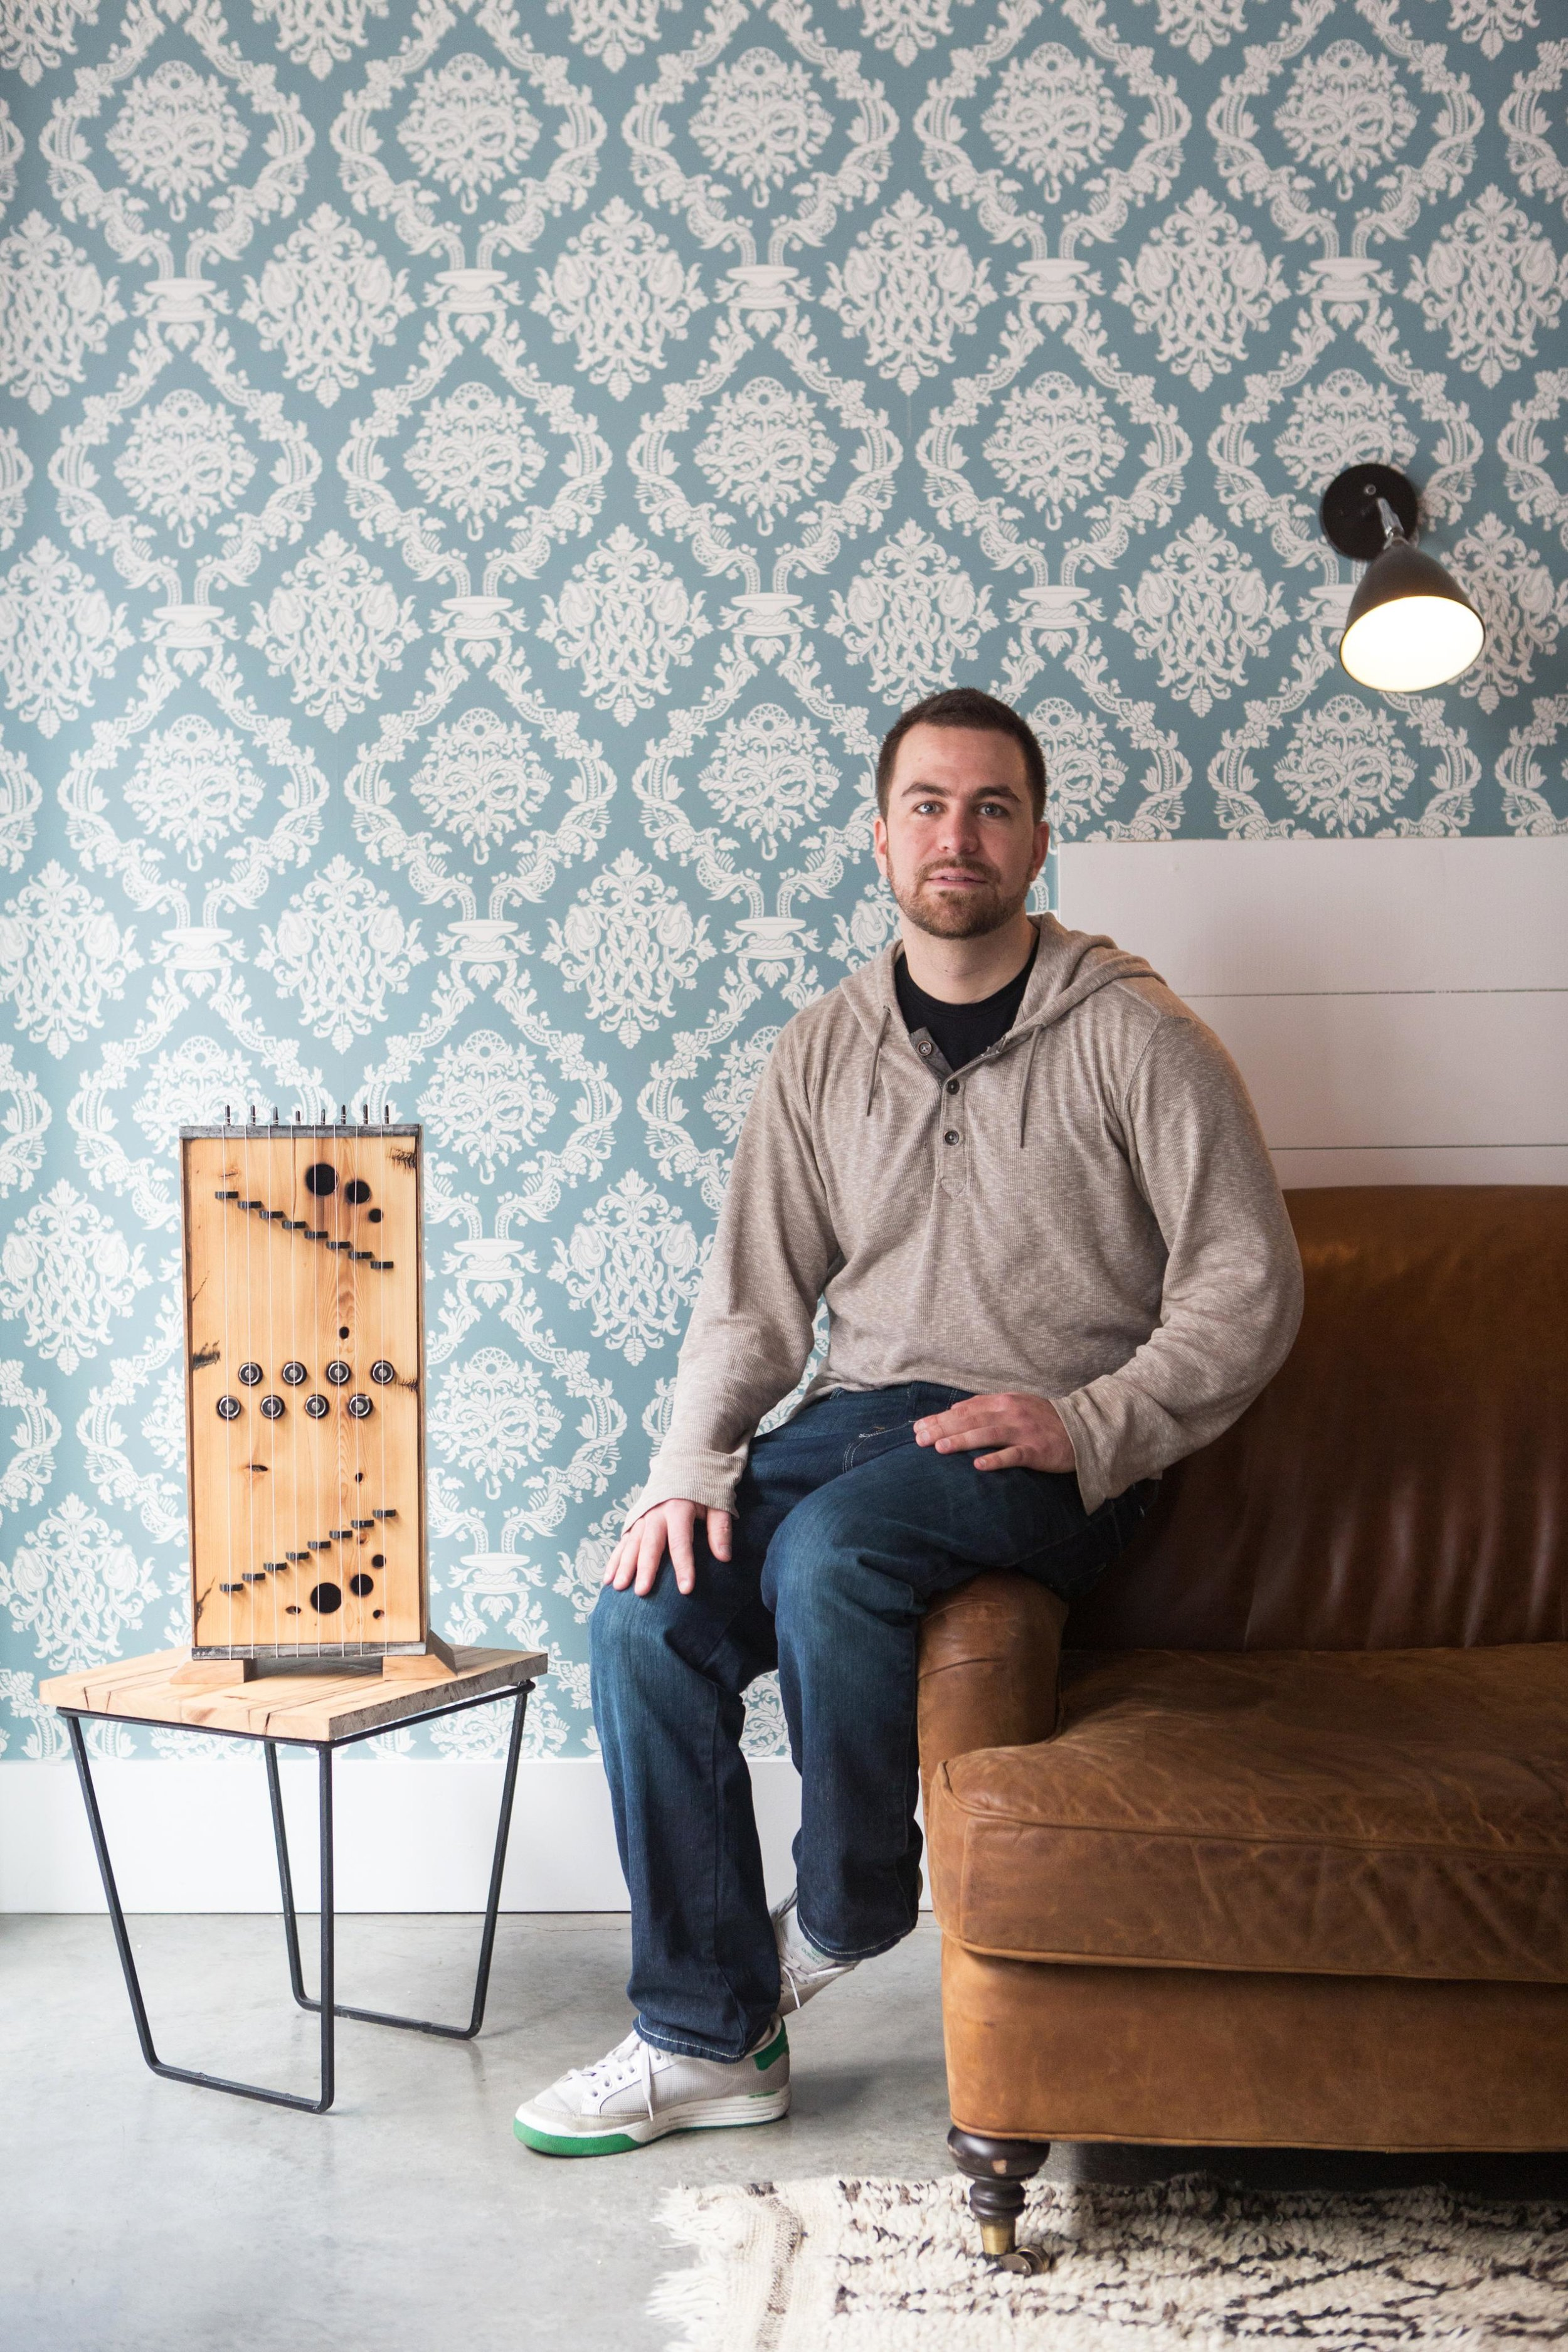 MJ Caselden with one of his sound sculptures in a suite room at the Wythe Hotel in New York City.